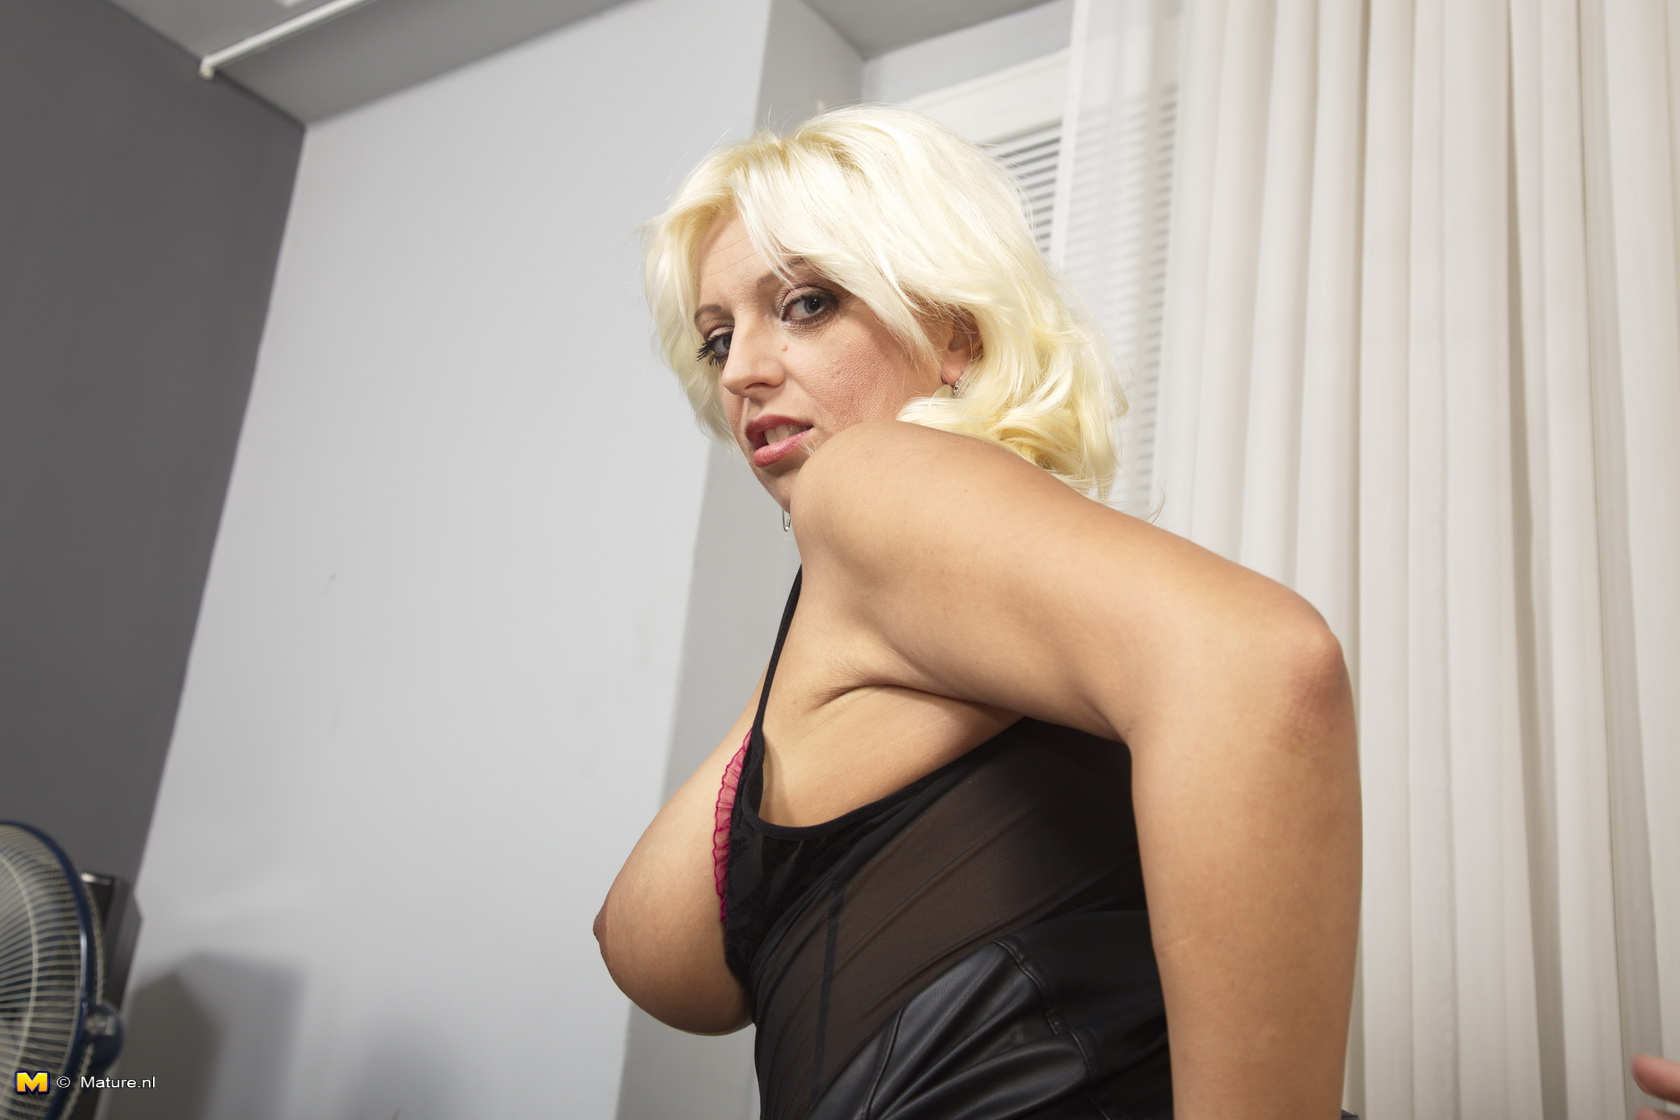 Naughty light-haired housewife getting it in POV fashion